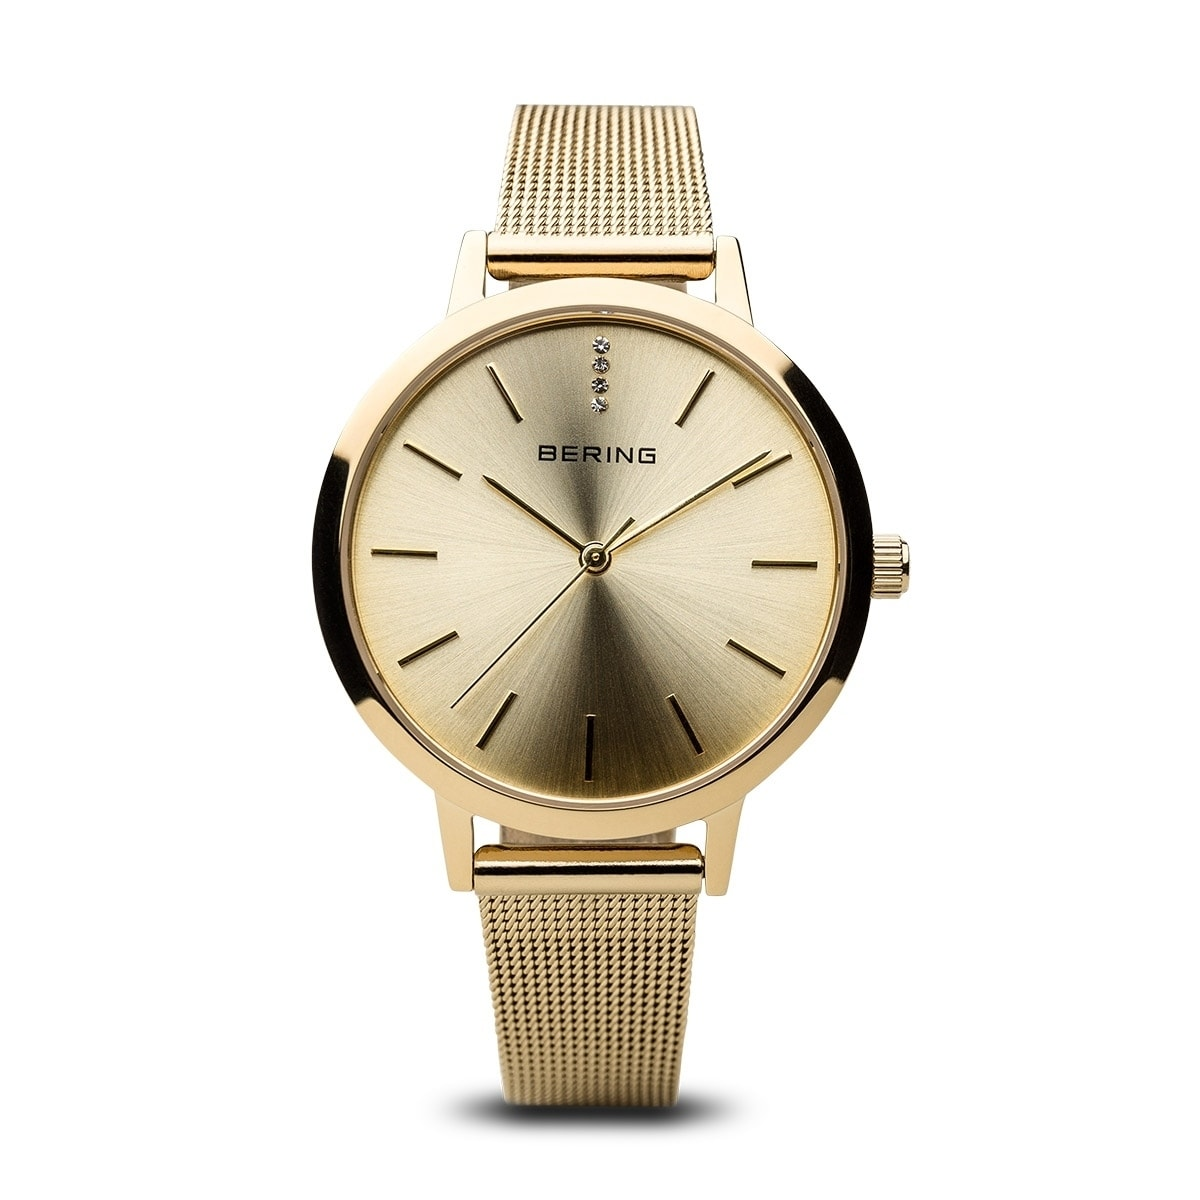 671af5e1bc1 Bering Women s Watches